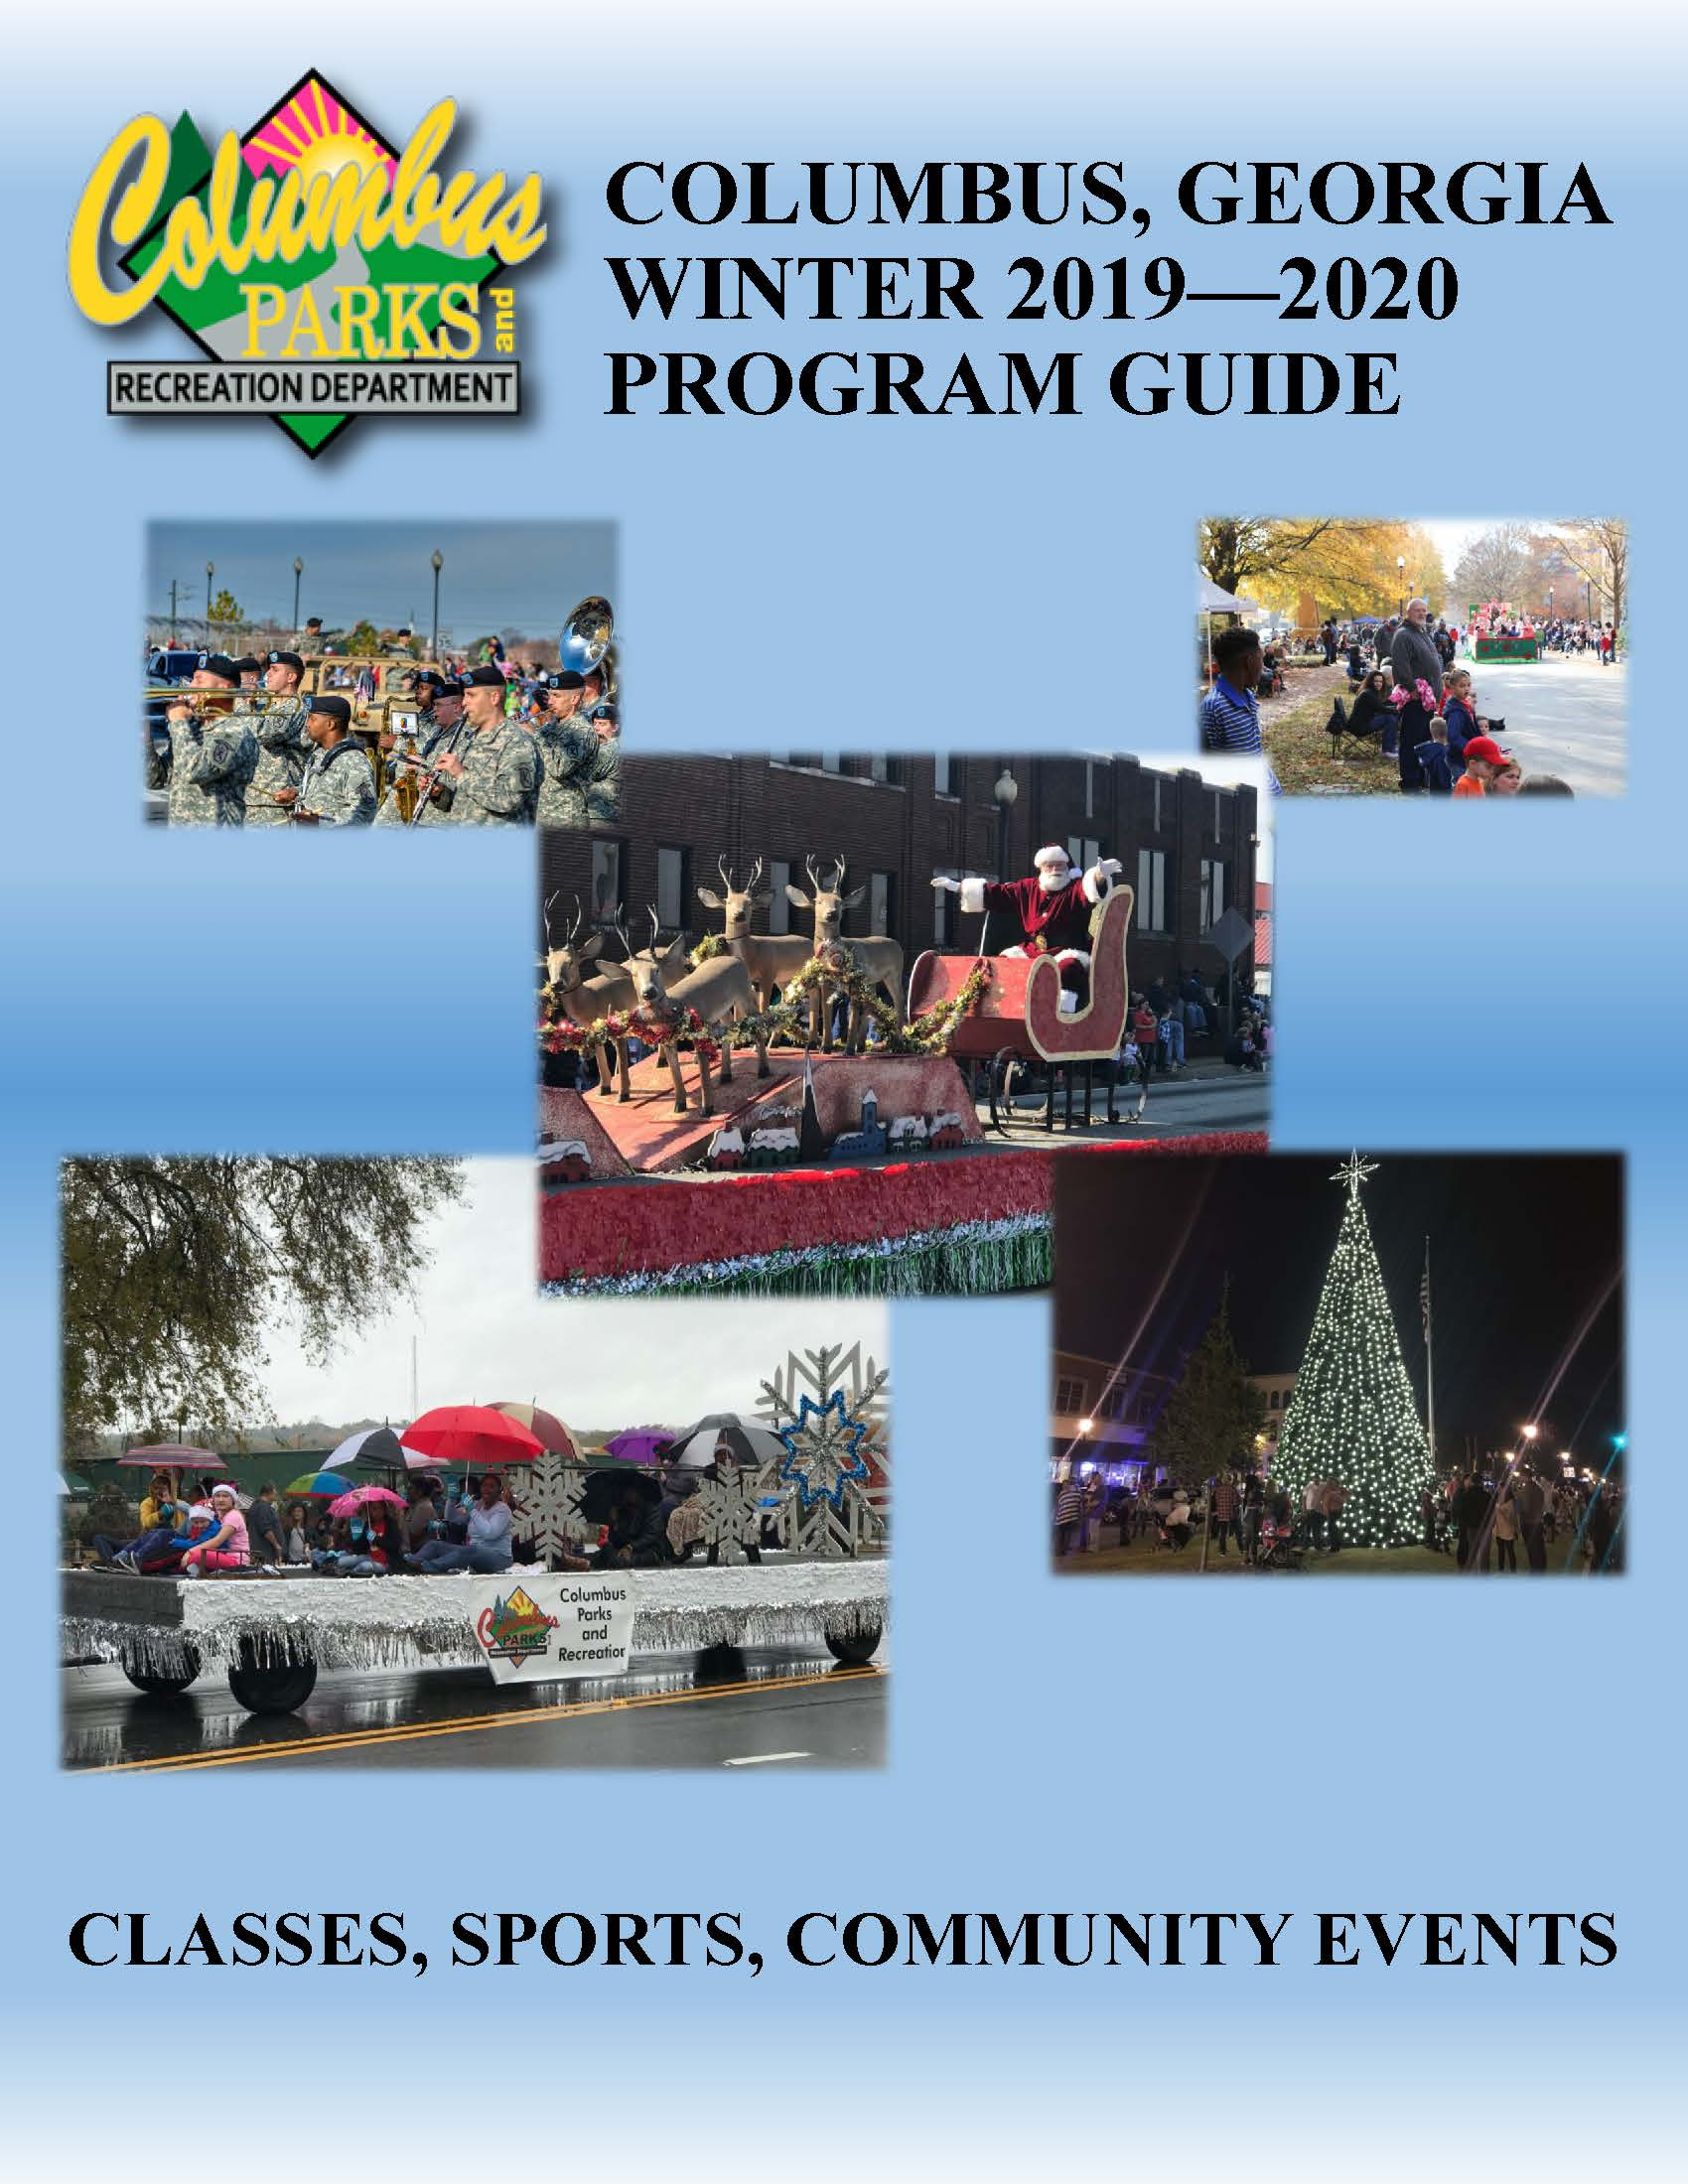 Recreation Centers Winter 2019-2020 Program Guide